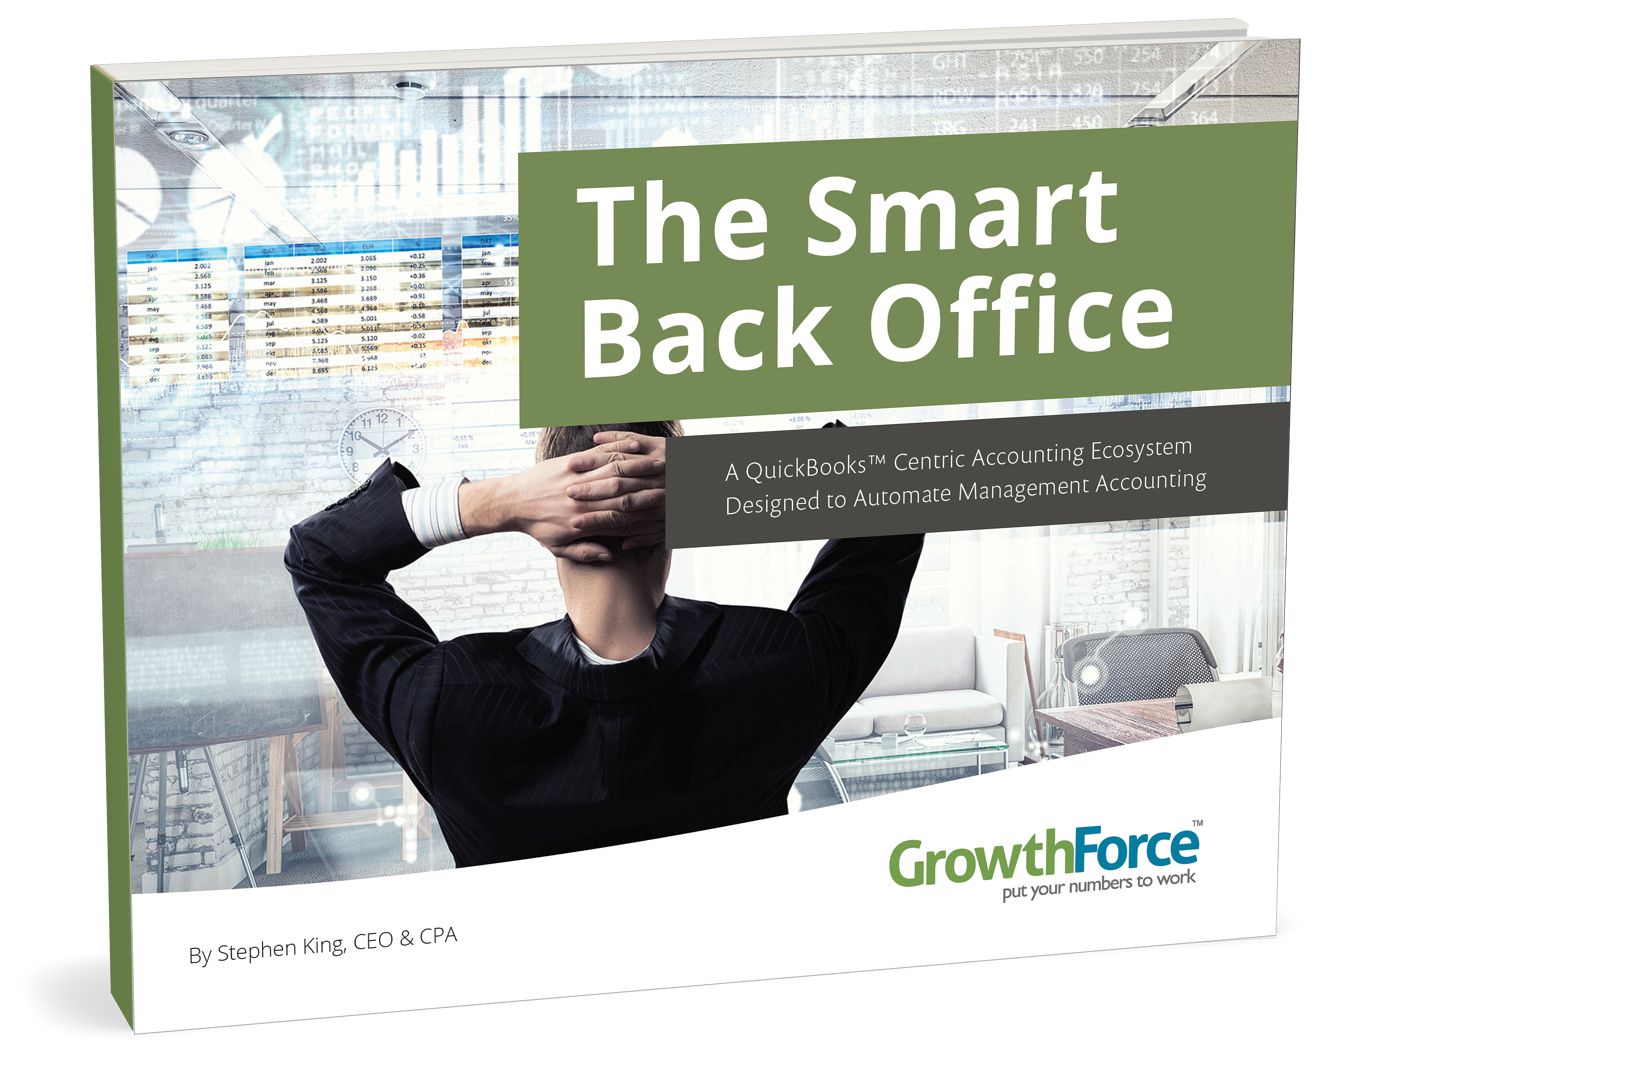 The Smart Back Office Guide